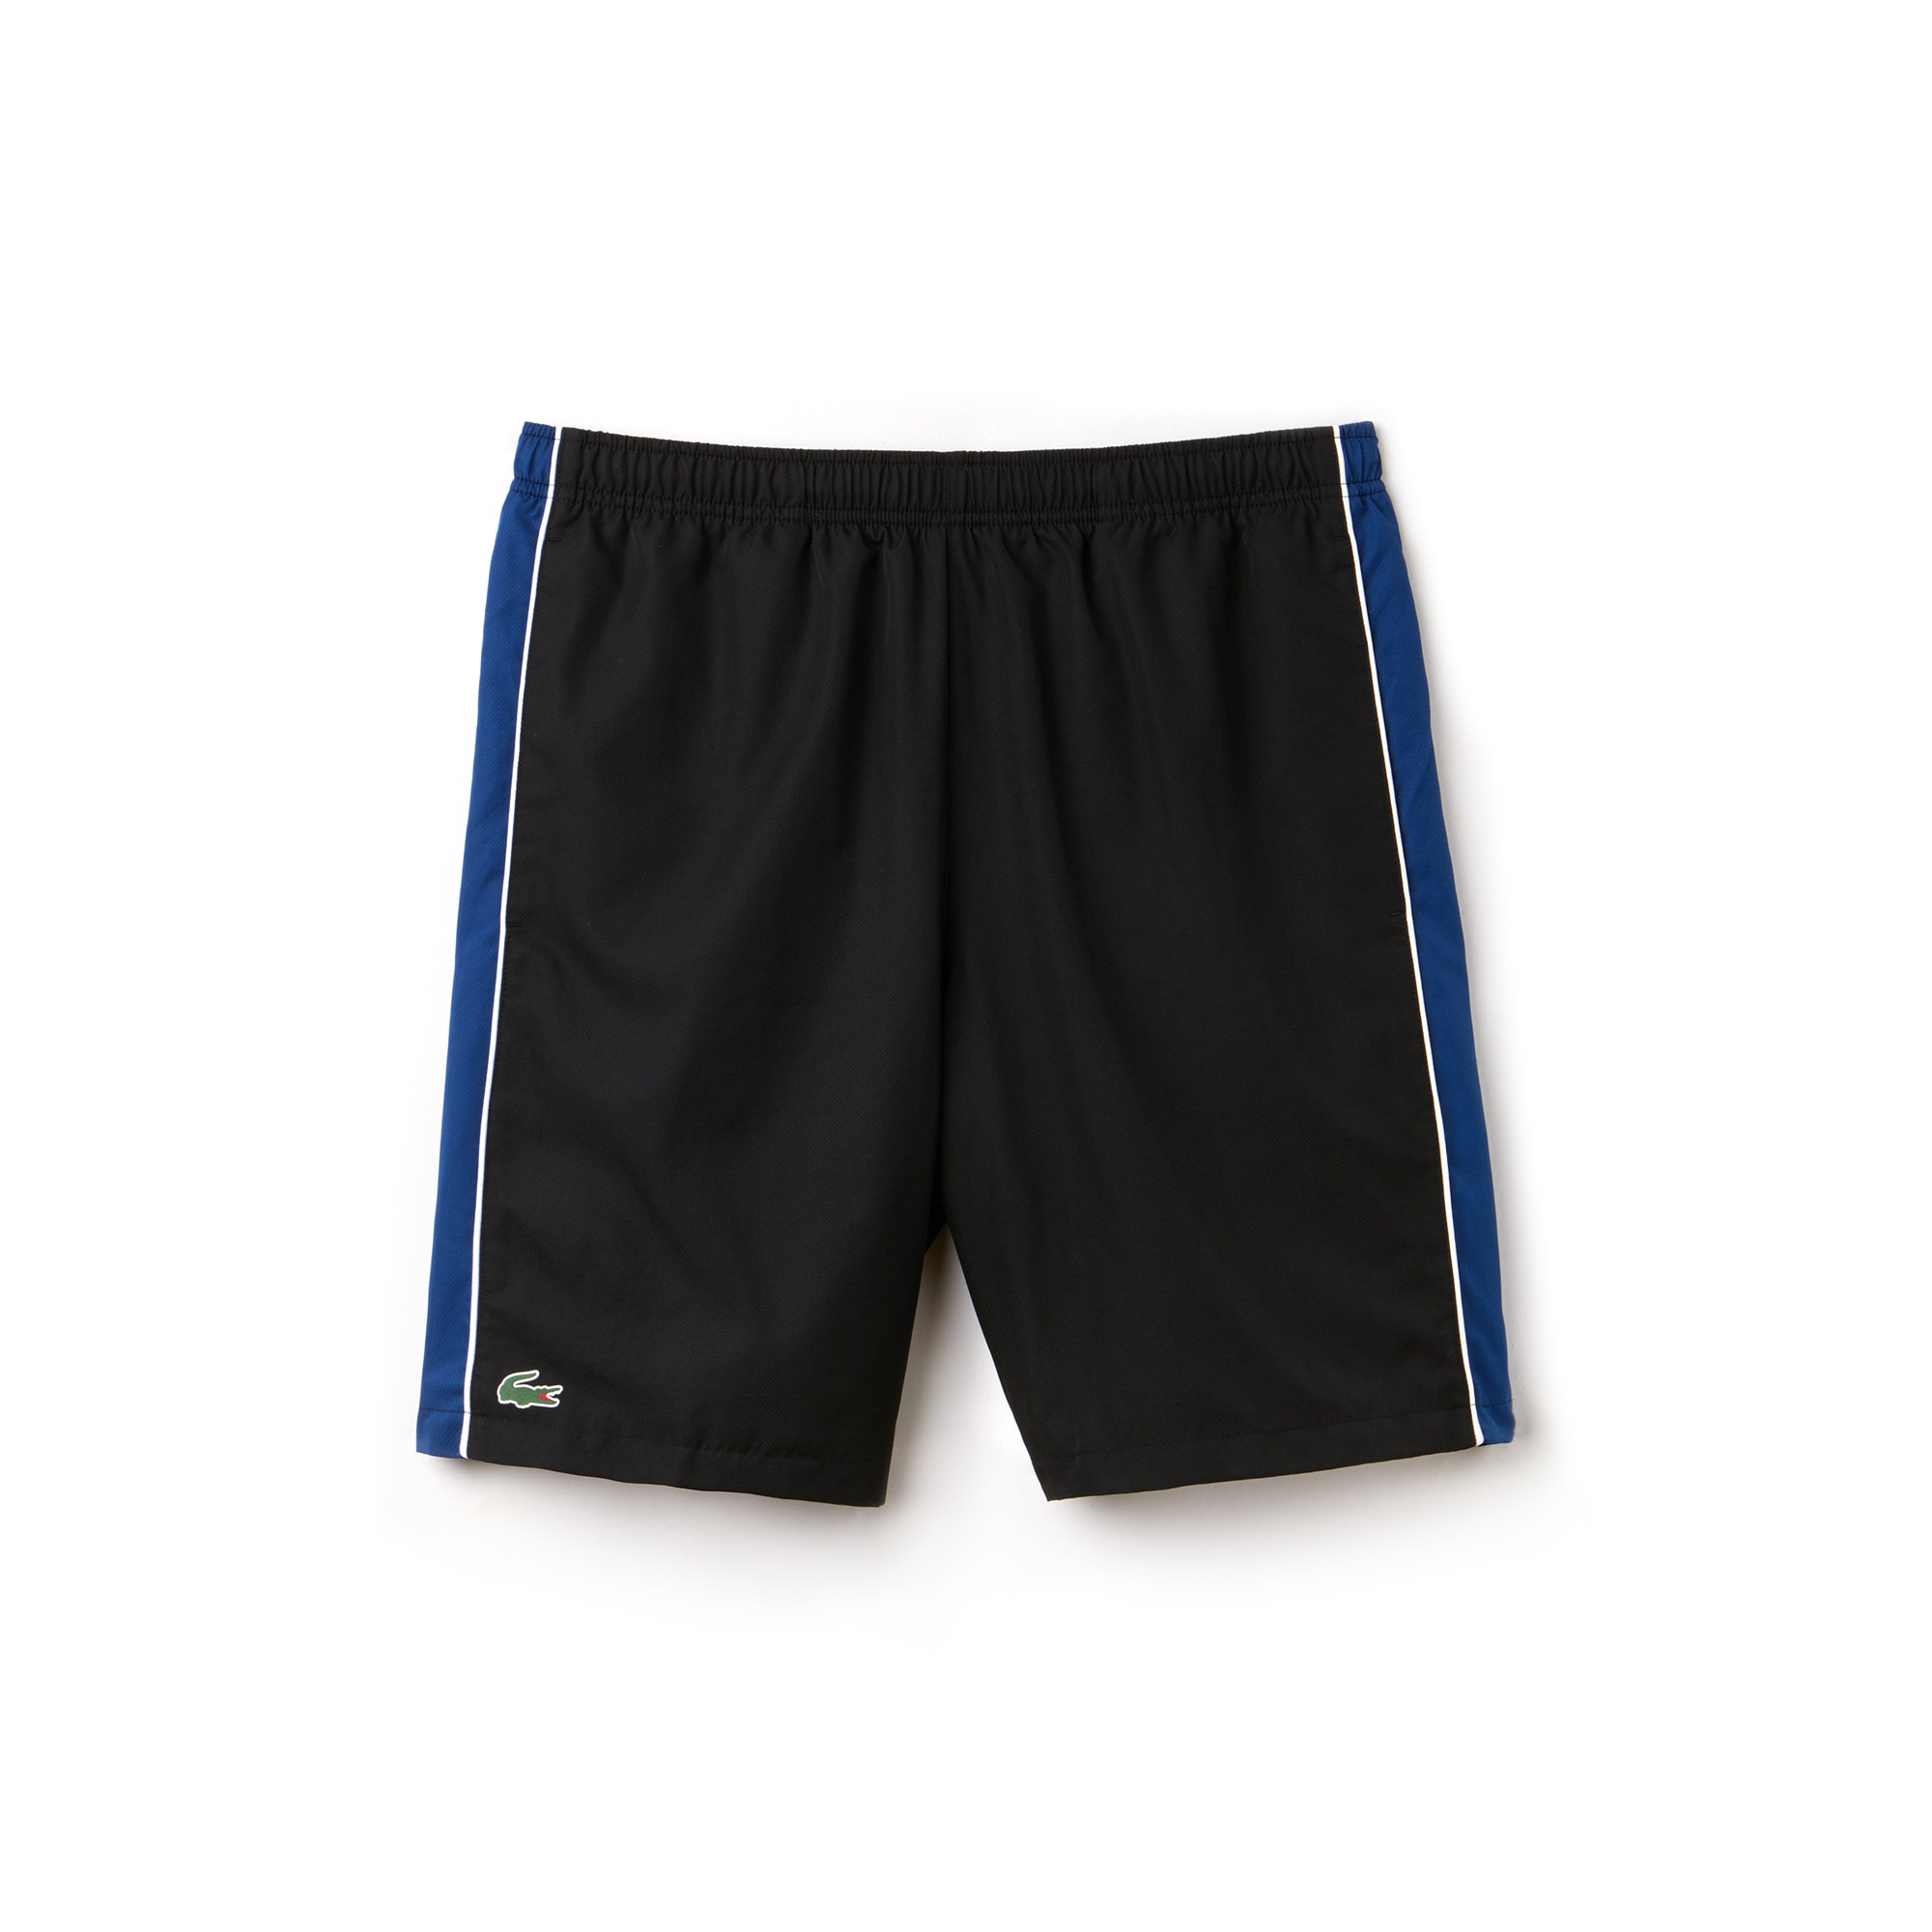 Herren LACOSTE SPORT NOVAK DJOKOVIC COLLECTION Colorblock Shorts